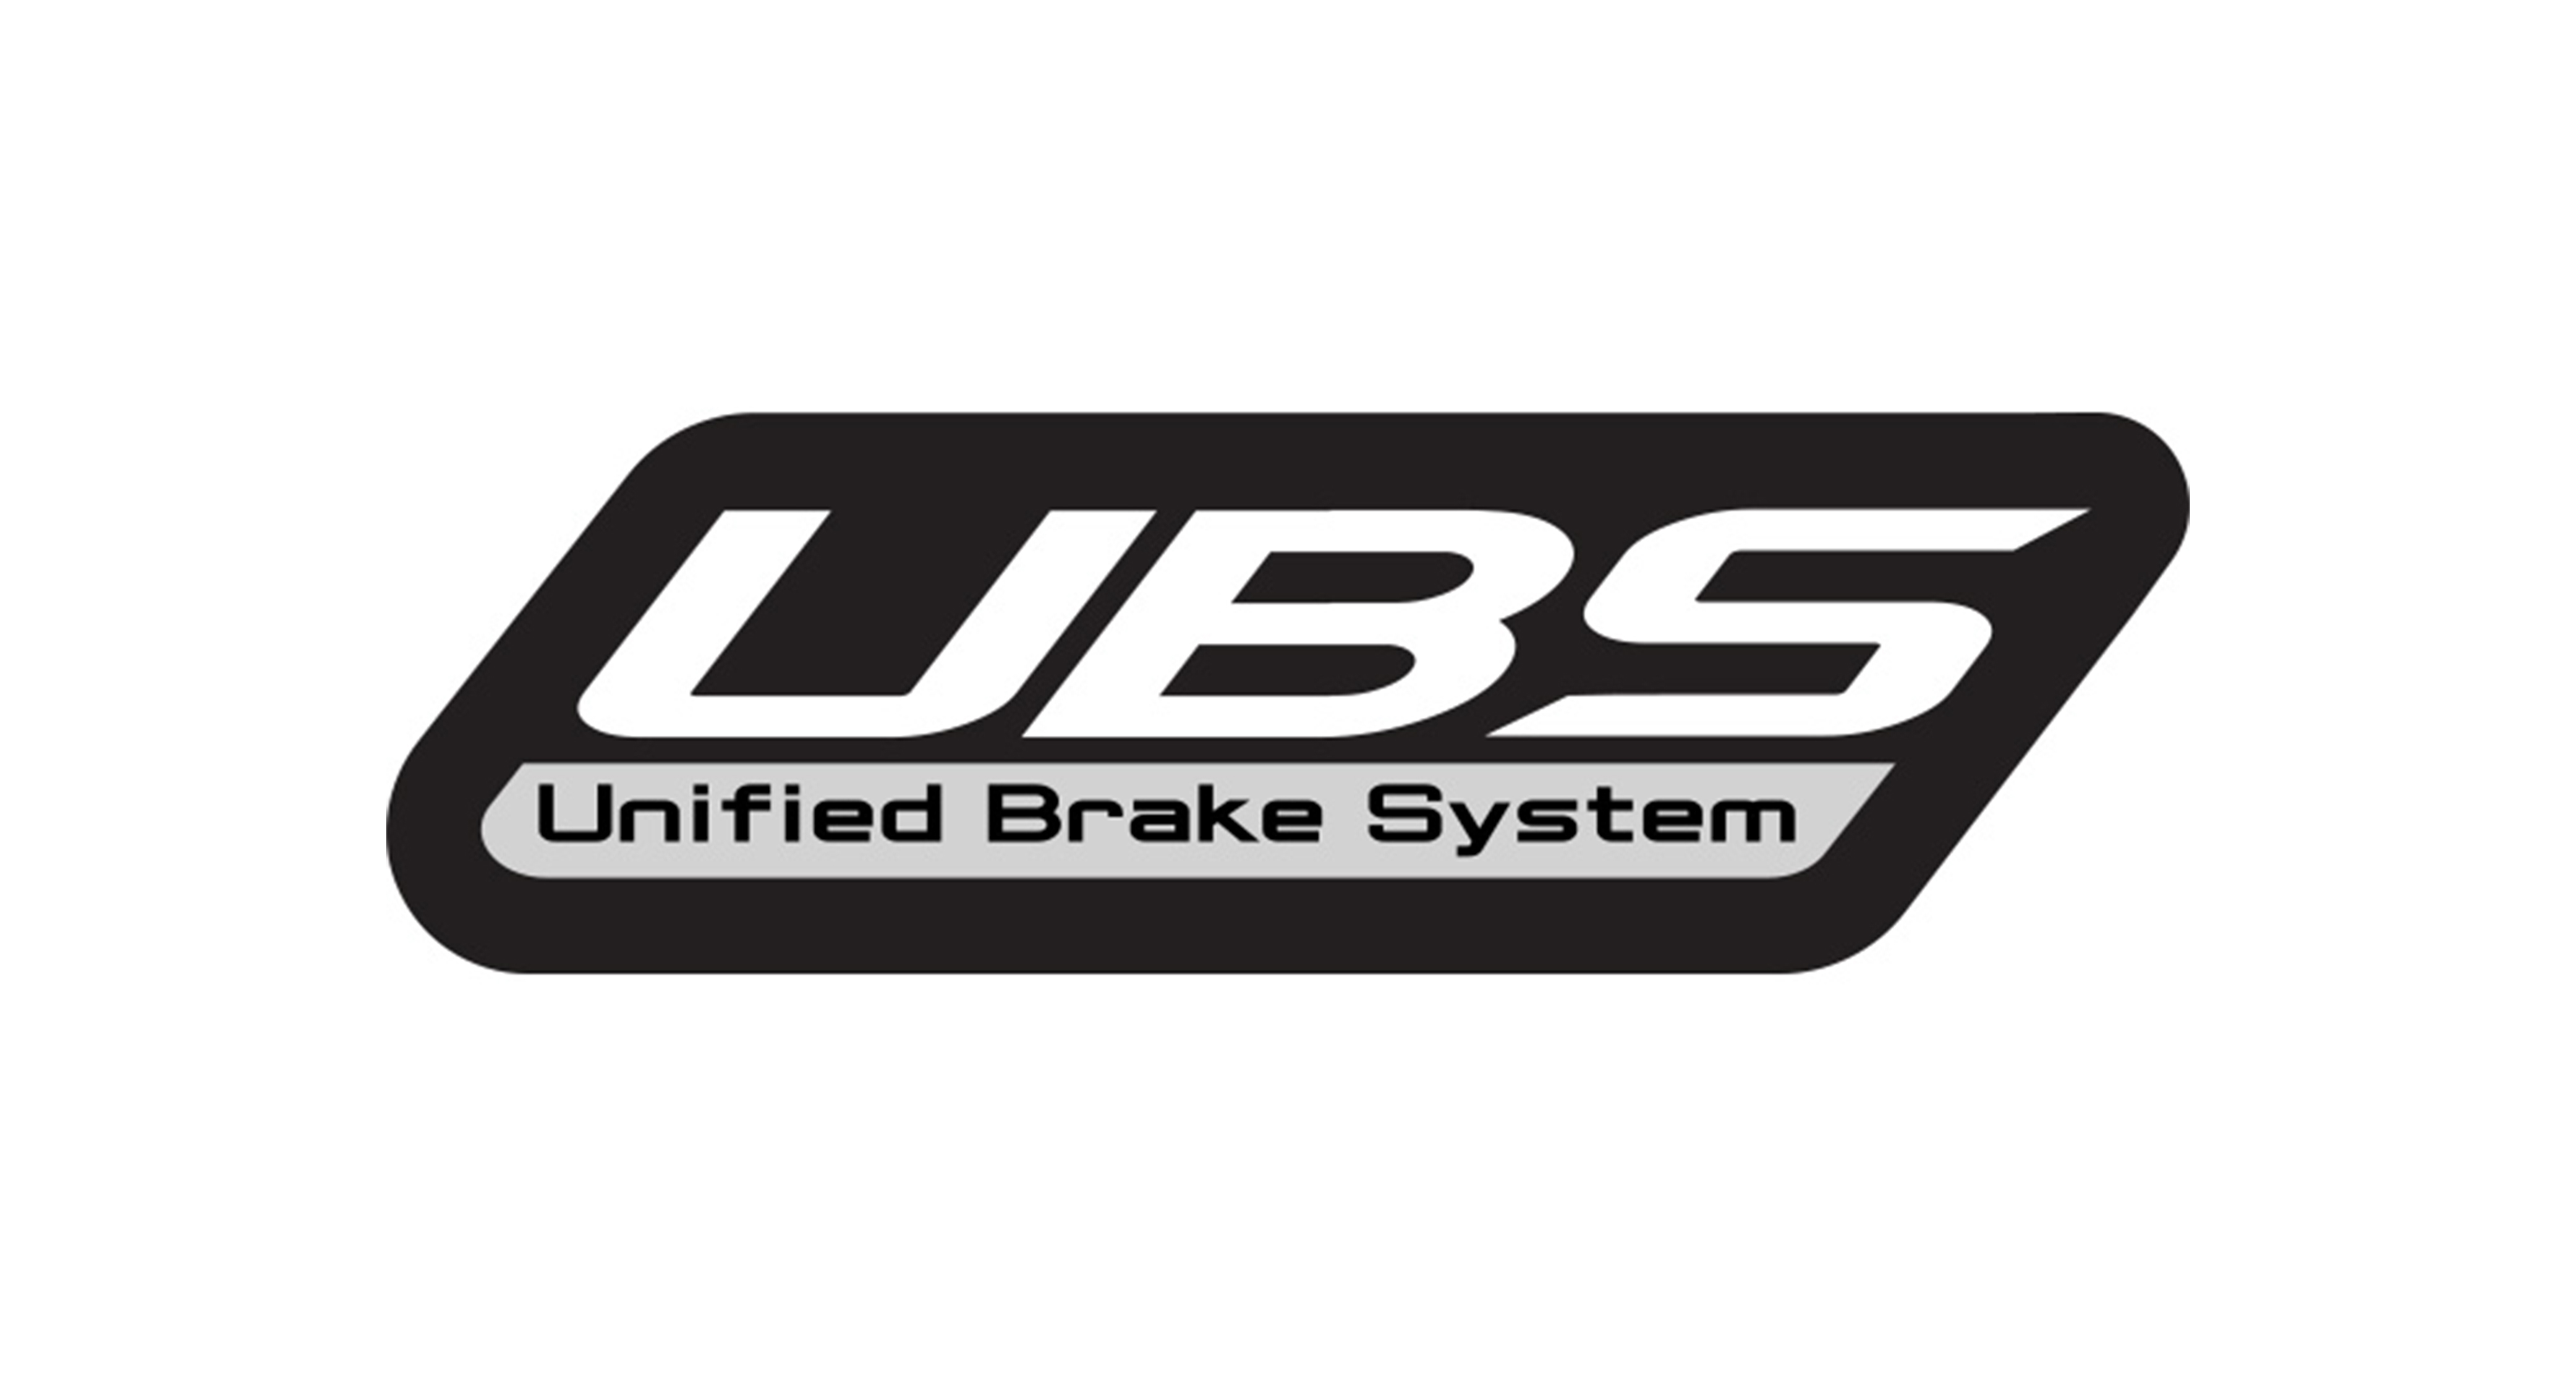 UBS (UNIFIED BRAKE SYSTEM)